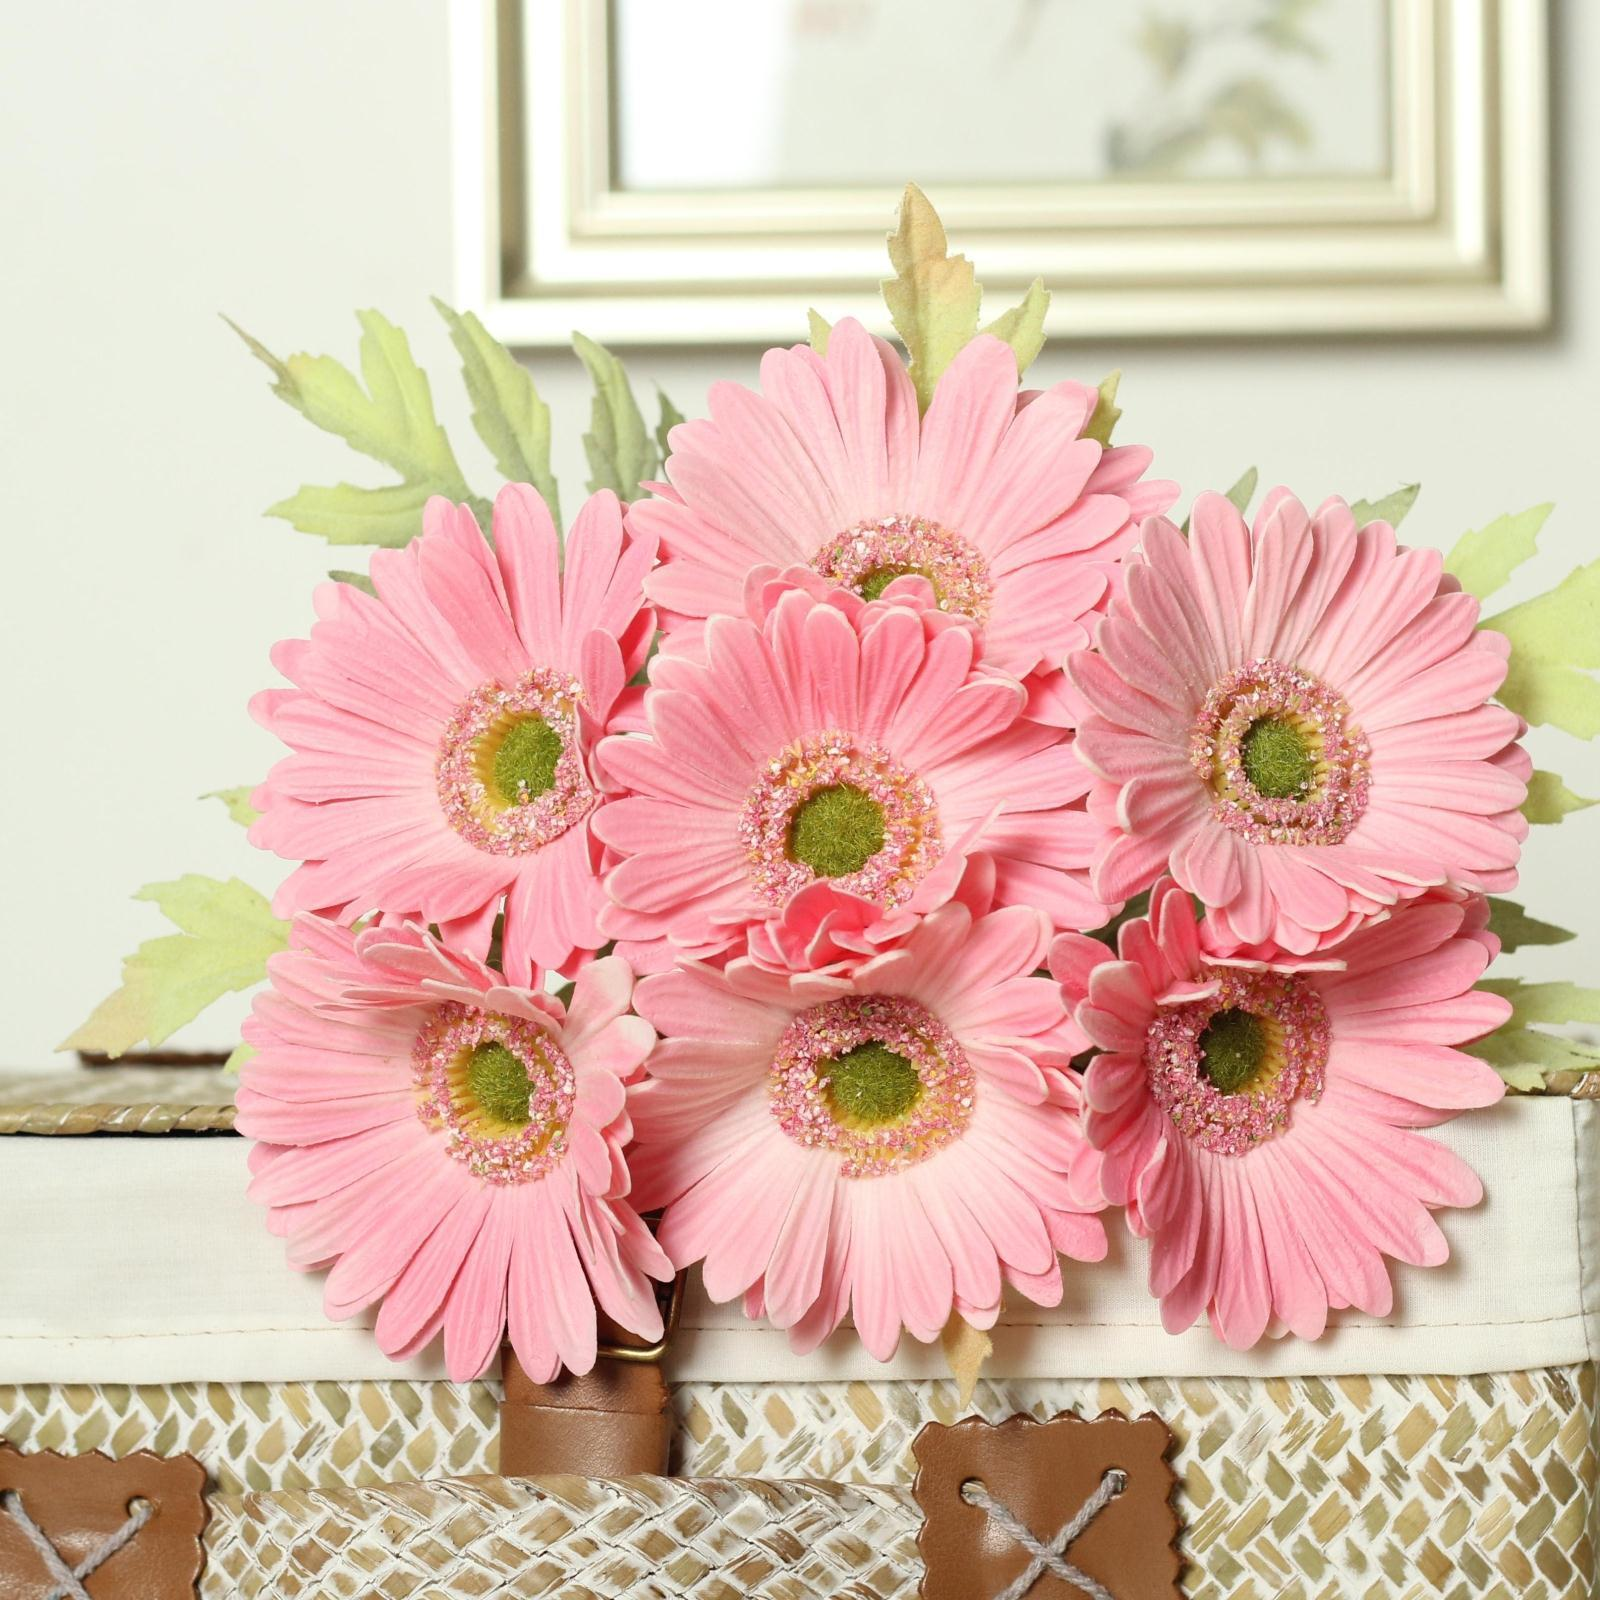 Gerbera Flower Bouquets Daisy Artificial Sunflower For Bridal Bouquet Wedding Home Decor Real Touch PU